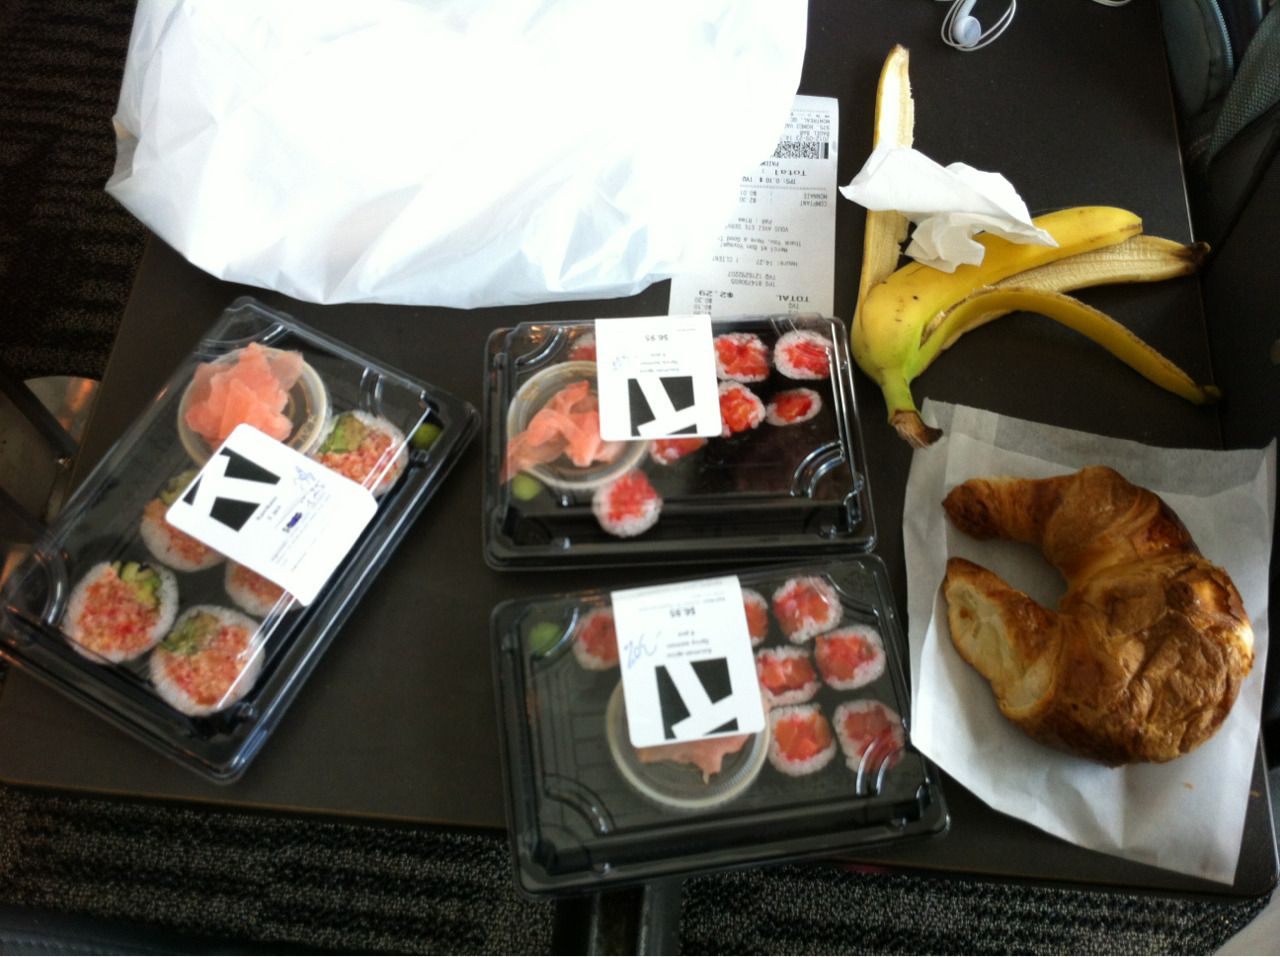 ordered and ate all of this discounted day-old airport sushi